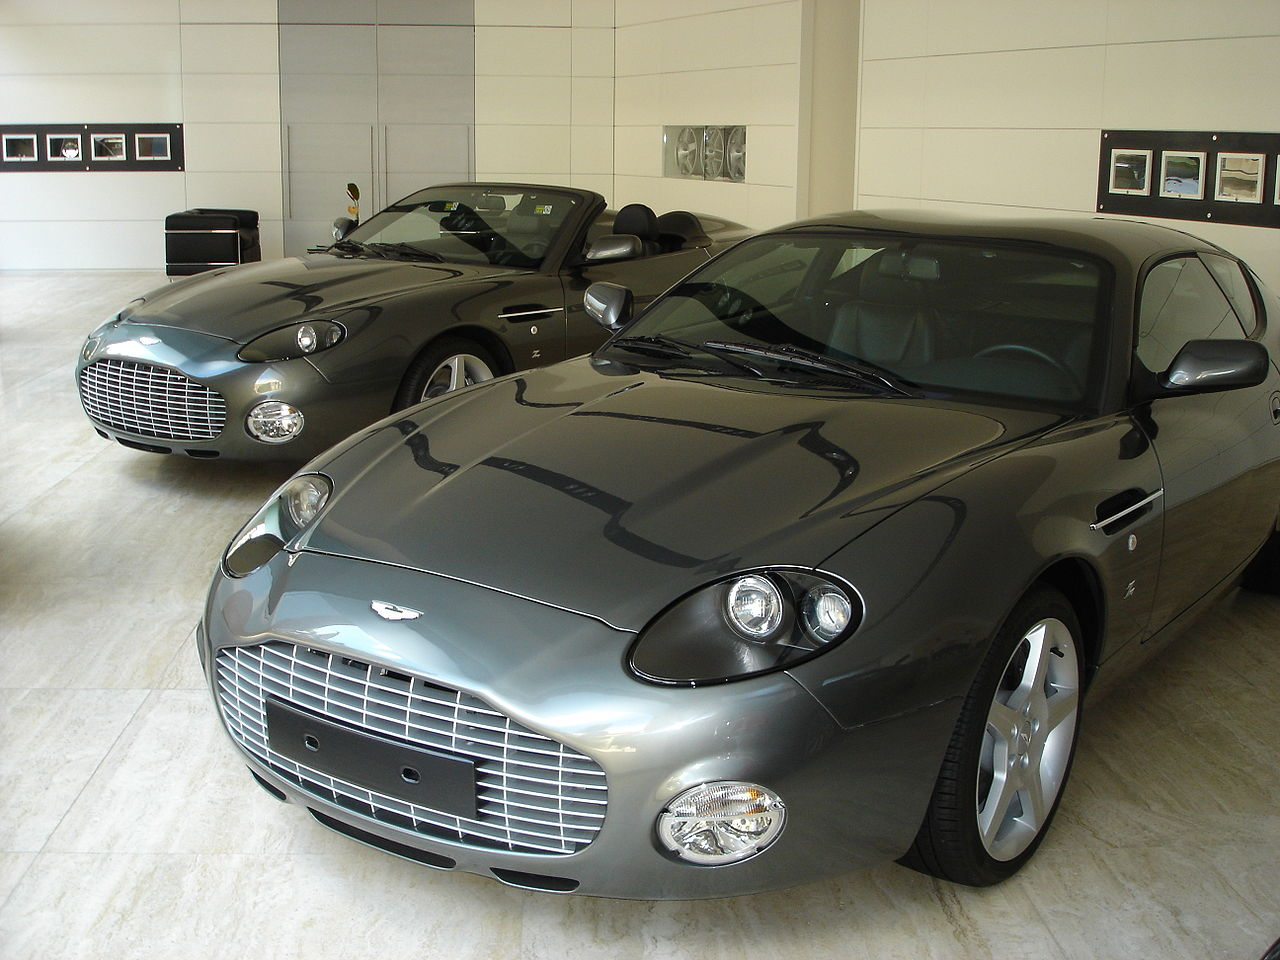 10 Aston Martin PDF manuals Free Download - Сar PDF Manual, Wiring on db9 connector diagram, db9 cable, rj45 pinout diagram, db9 pinout, usb to serial pinout diagram,